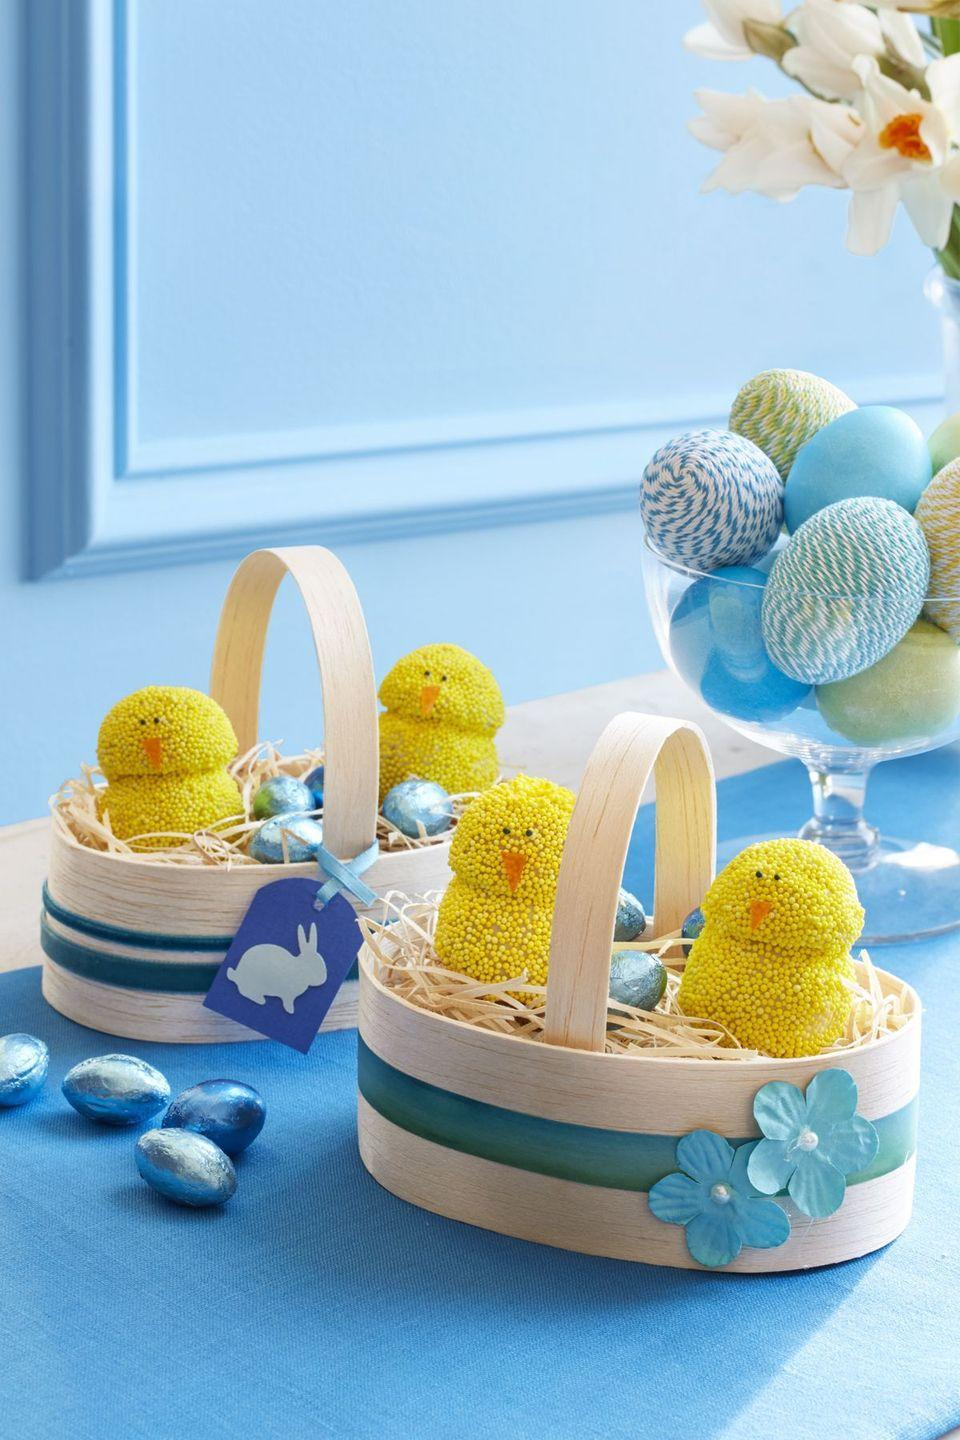 """<p>These adorable spring chickens are so cute your guests might not even know that they're edible! Little do they know, under the nonpareils there are delicious donut holes. </p><p><strong><em><a href=""""https://www.womansday.com/food-recipes/food-drinks/recipes/a58152/spring-chickens-recipe/"""" rel=""""nofollow noopener"""" target=""""_blank"""" data-ylk=""""slk:Get the Spring Chickens recipe."""" class=""""link rapid-noclick-resp"""">Get the Spring Chickens recipe. </a></em></strong></p>"""